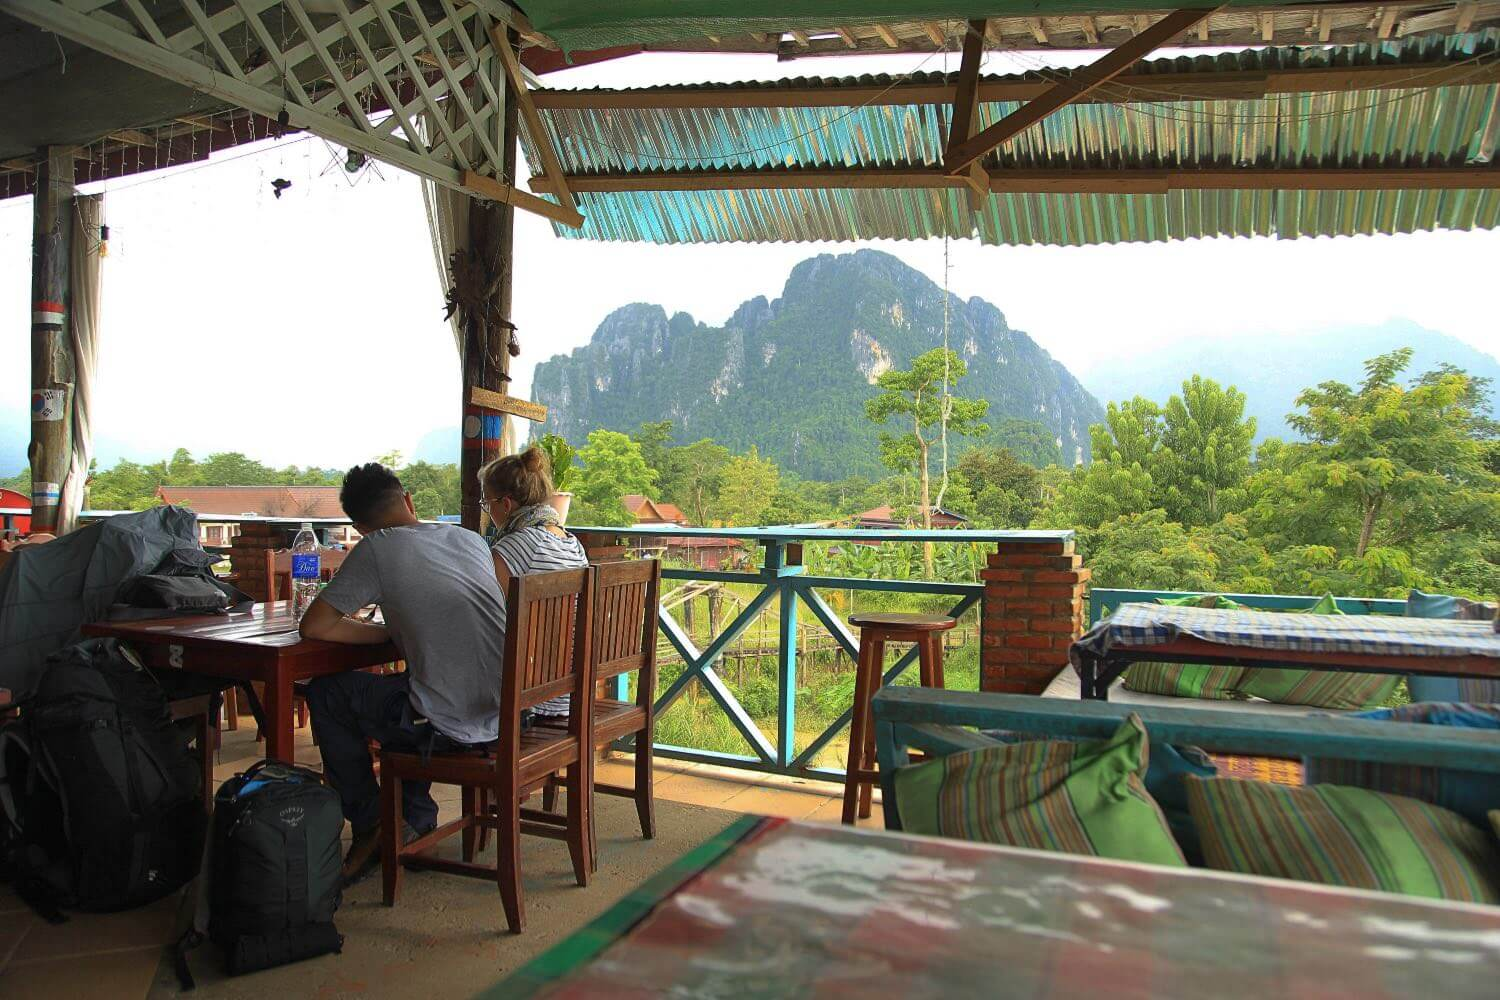 a riverside restaurant in Vang Vieng, Laos